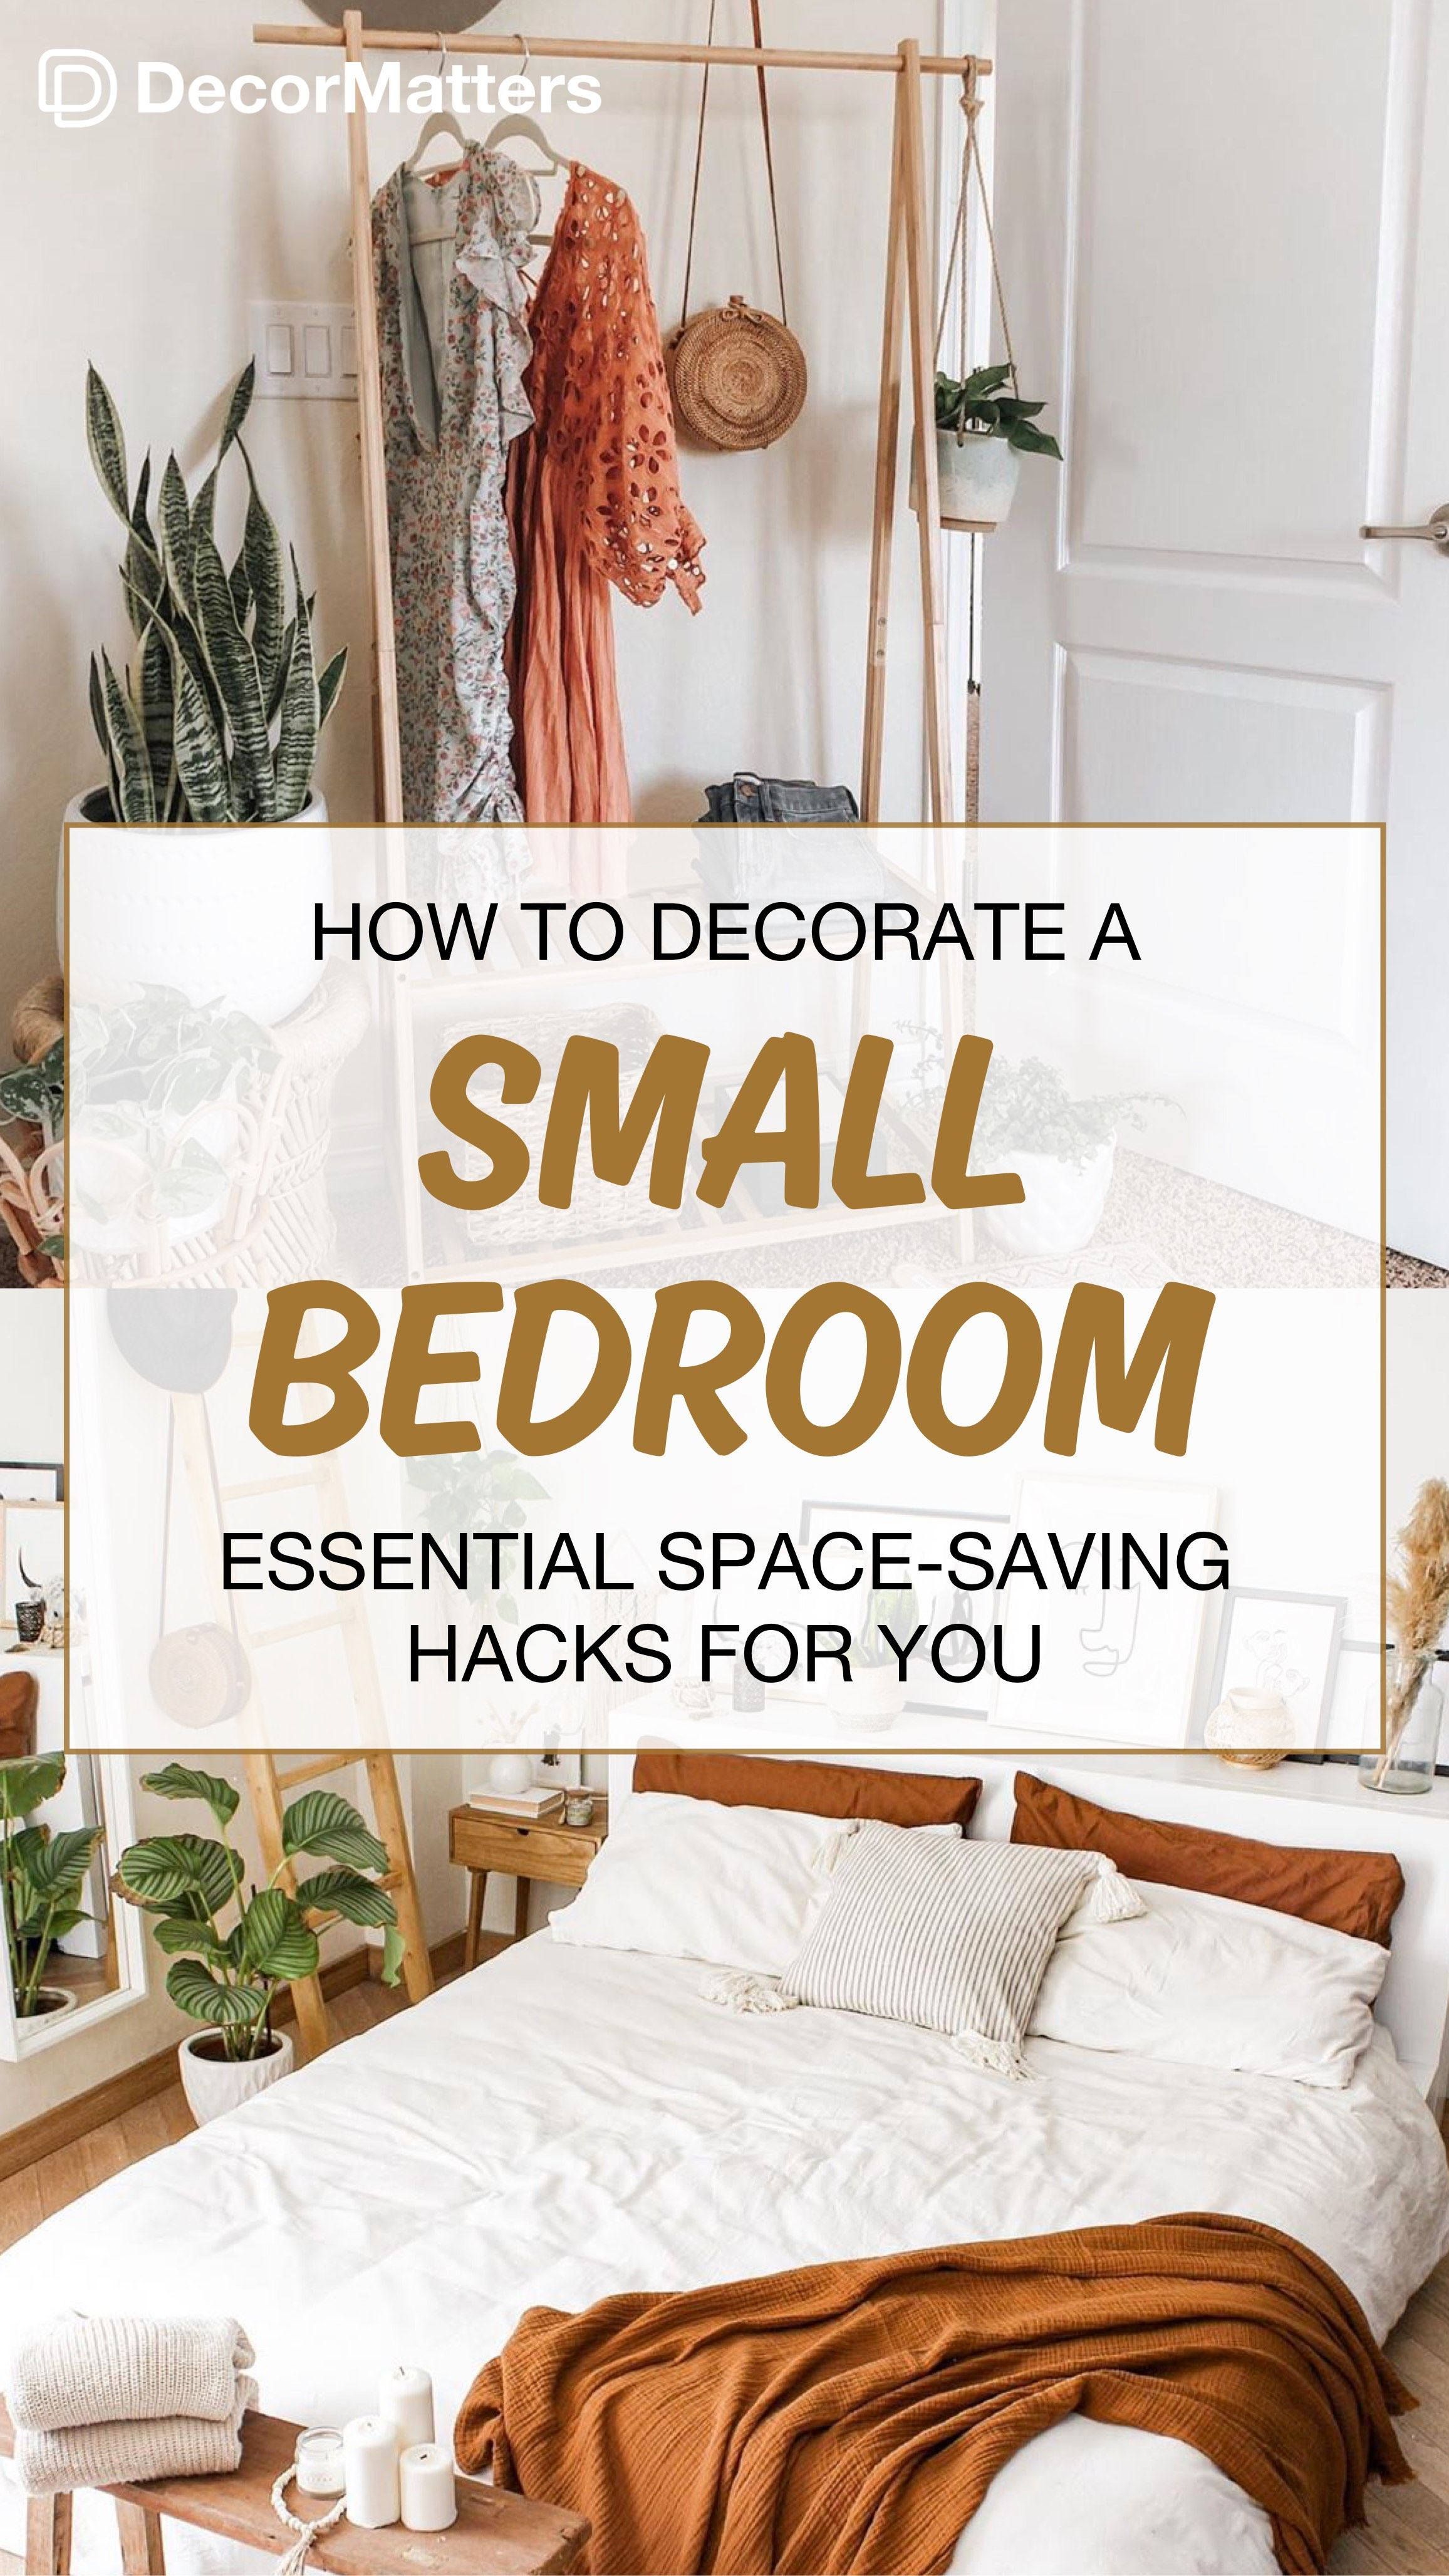 How To Decorate A Small Bedroom Essential Space Saving Hacks For You In 2020 Small Bedroom Space Saving Hacks Space Saving